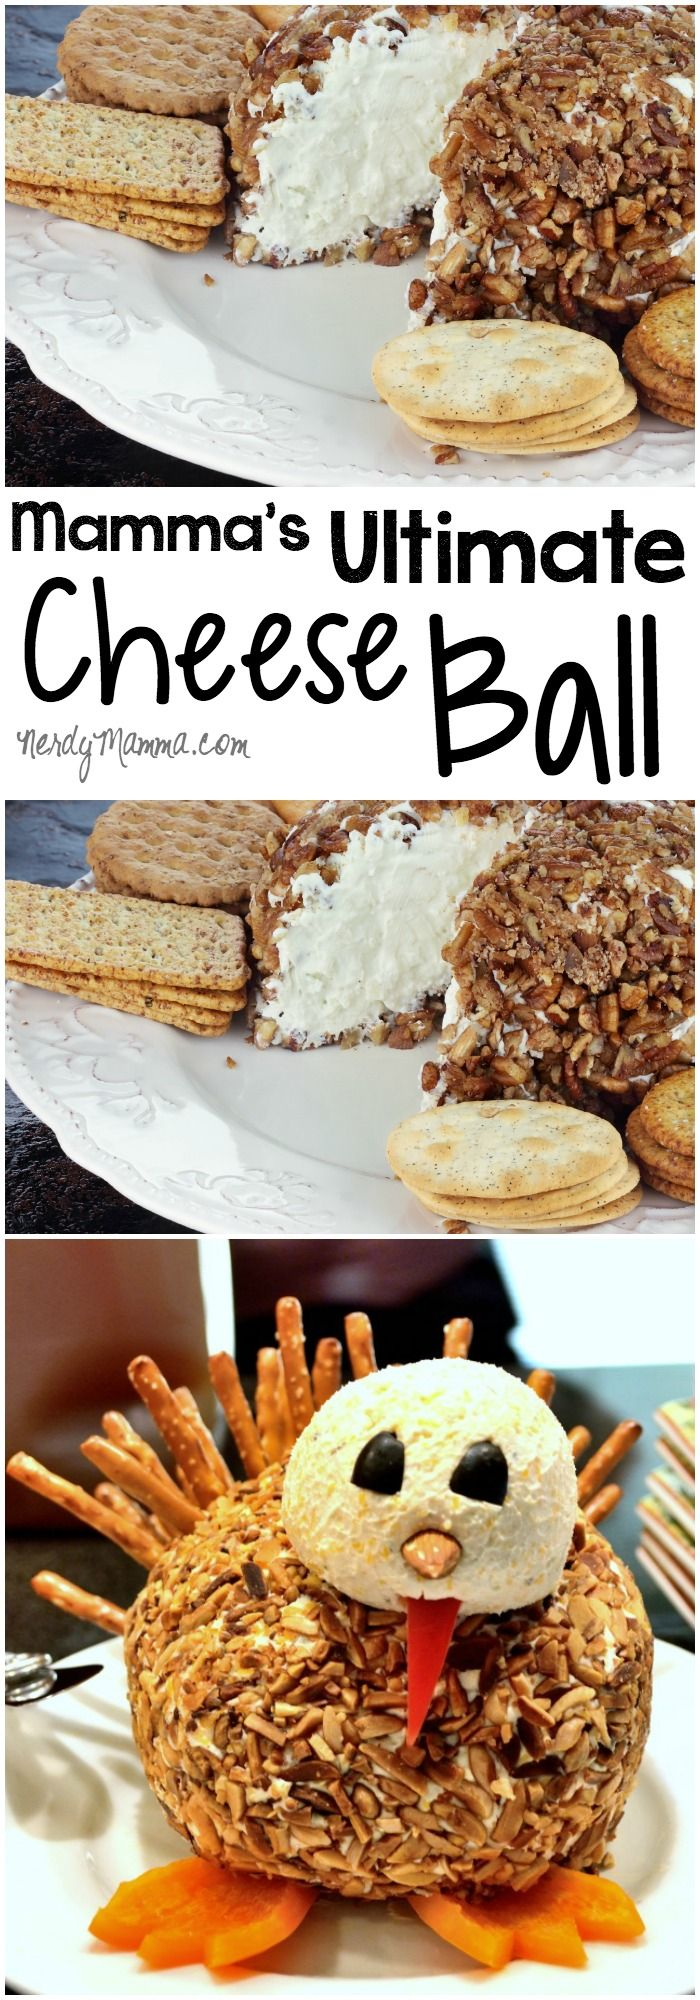 This is the easiest and yummiest cheese ball recipe ever. So smooth and the flavors are just awesome. I make it every Thanksgiving--shaped like a turkey. LOL!